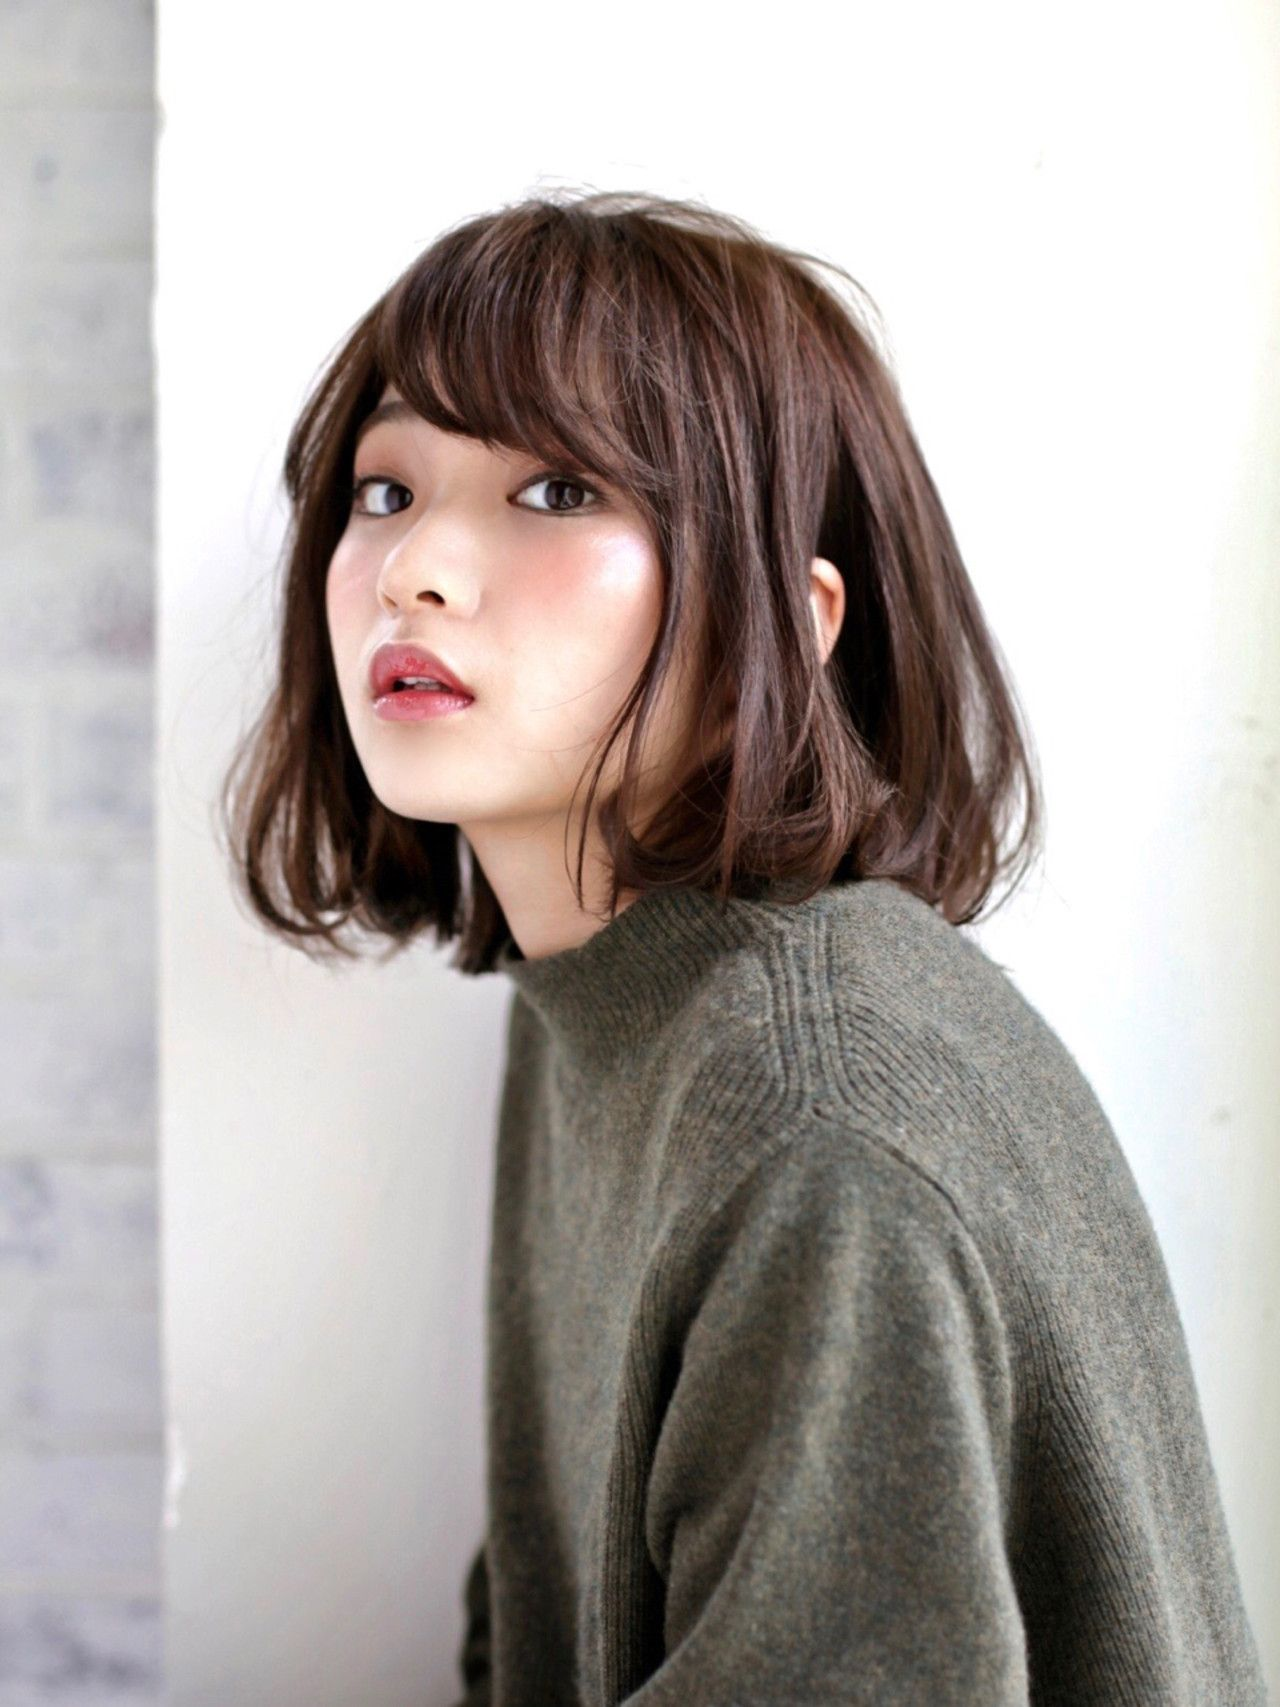 大人気ボブです asian pinterest hair styles short hair